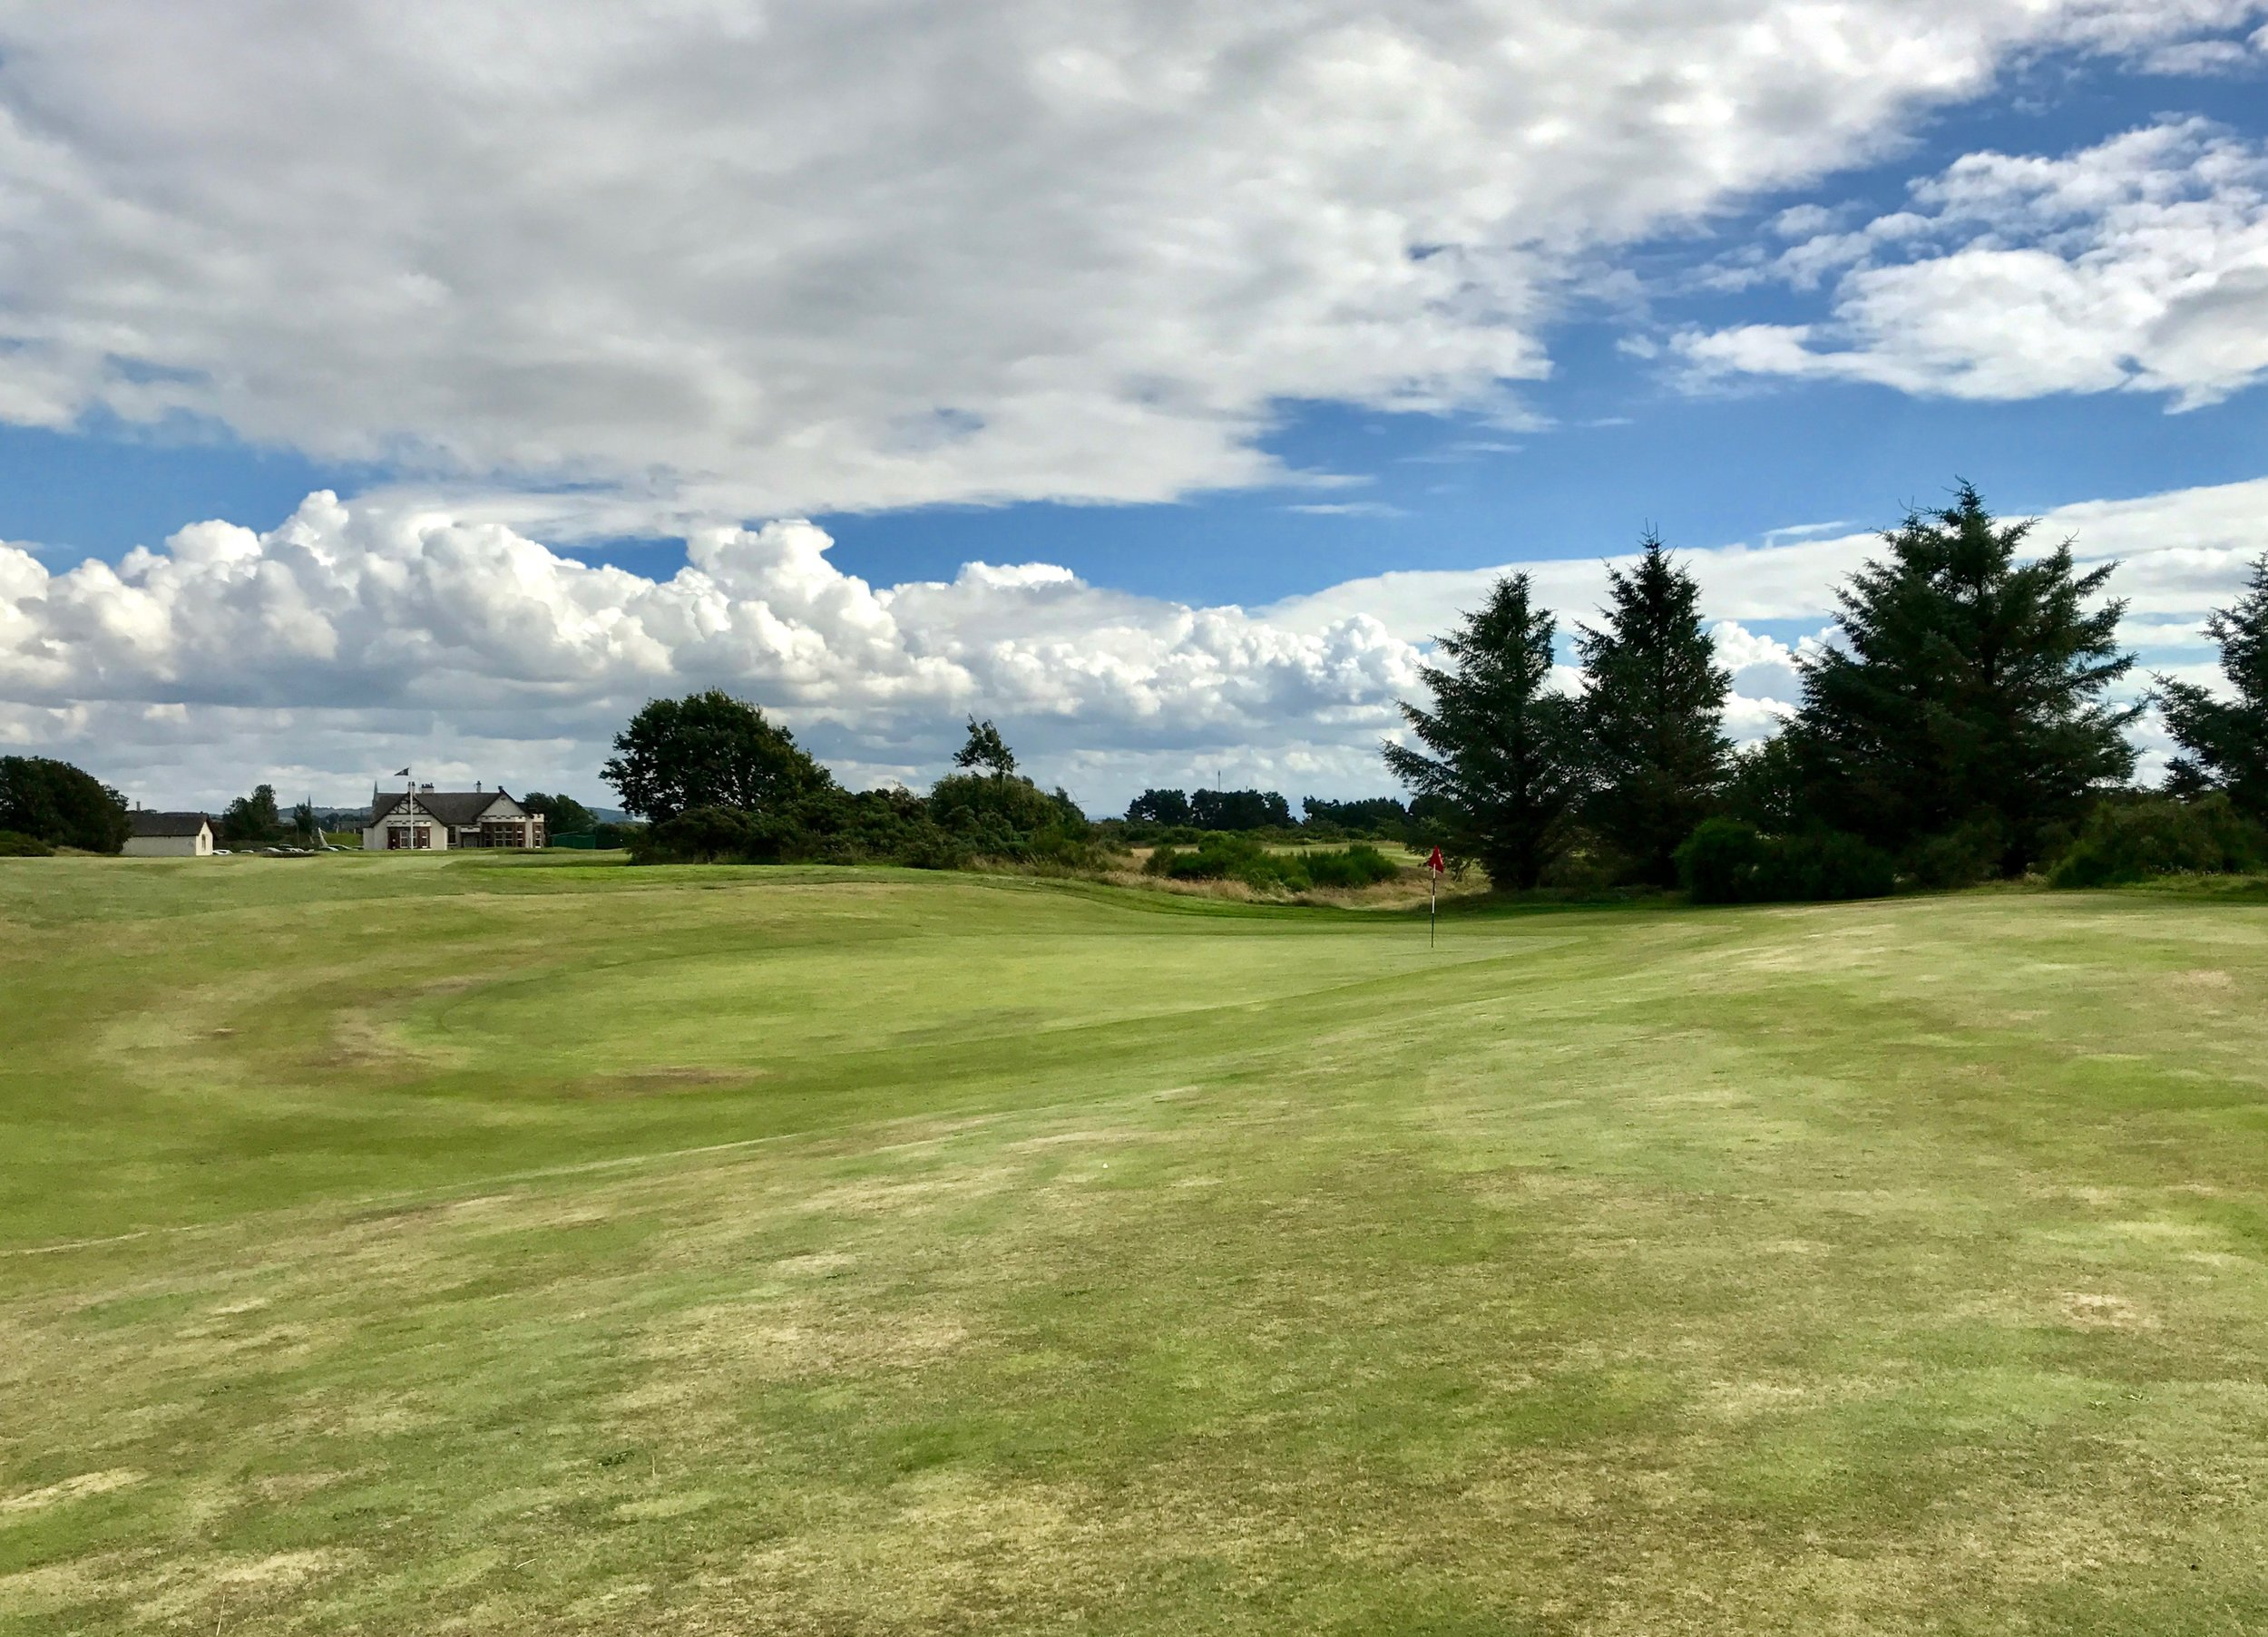 Irvine Bogside also had a couple of really cool greens.  The one that stood out most to me was this saddle green at the 17th.  It reminds me a lot of some of the greens at High Pointe the way it sweeps and fits with the land.